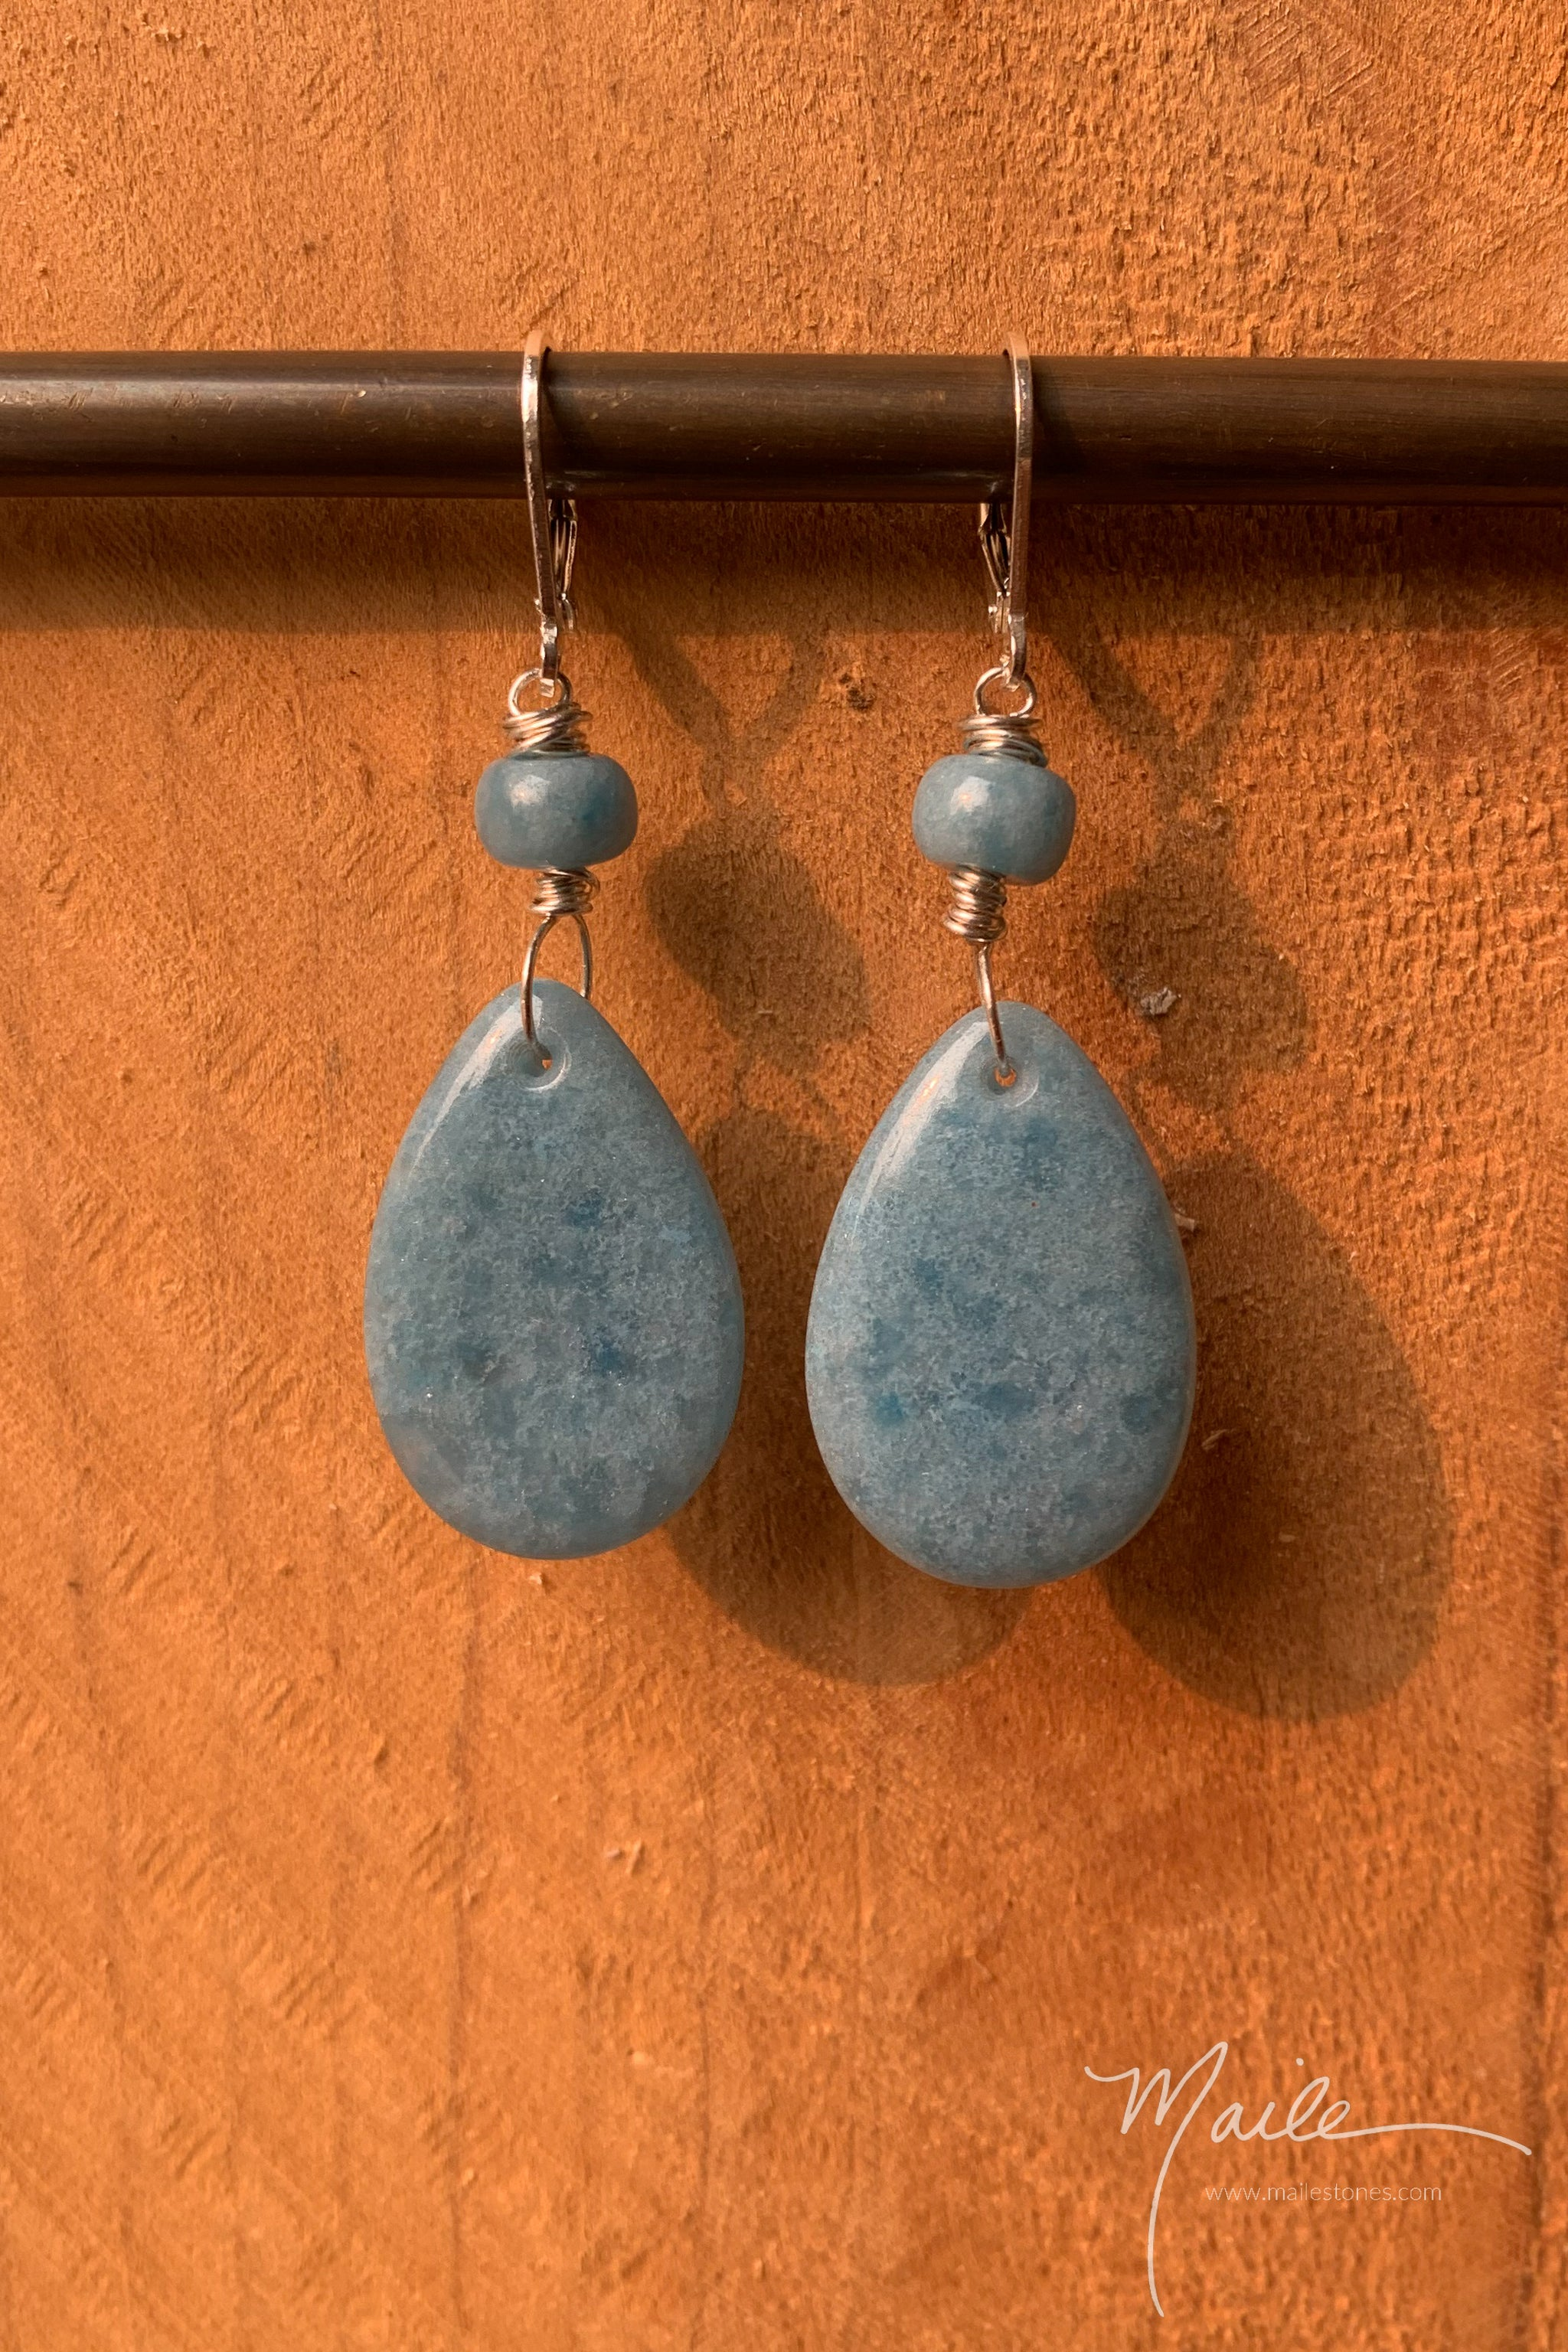 Triallite Earrings